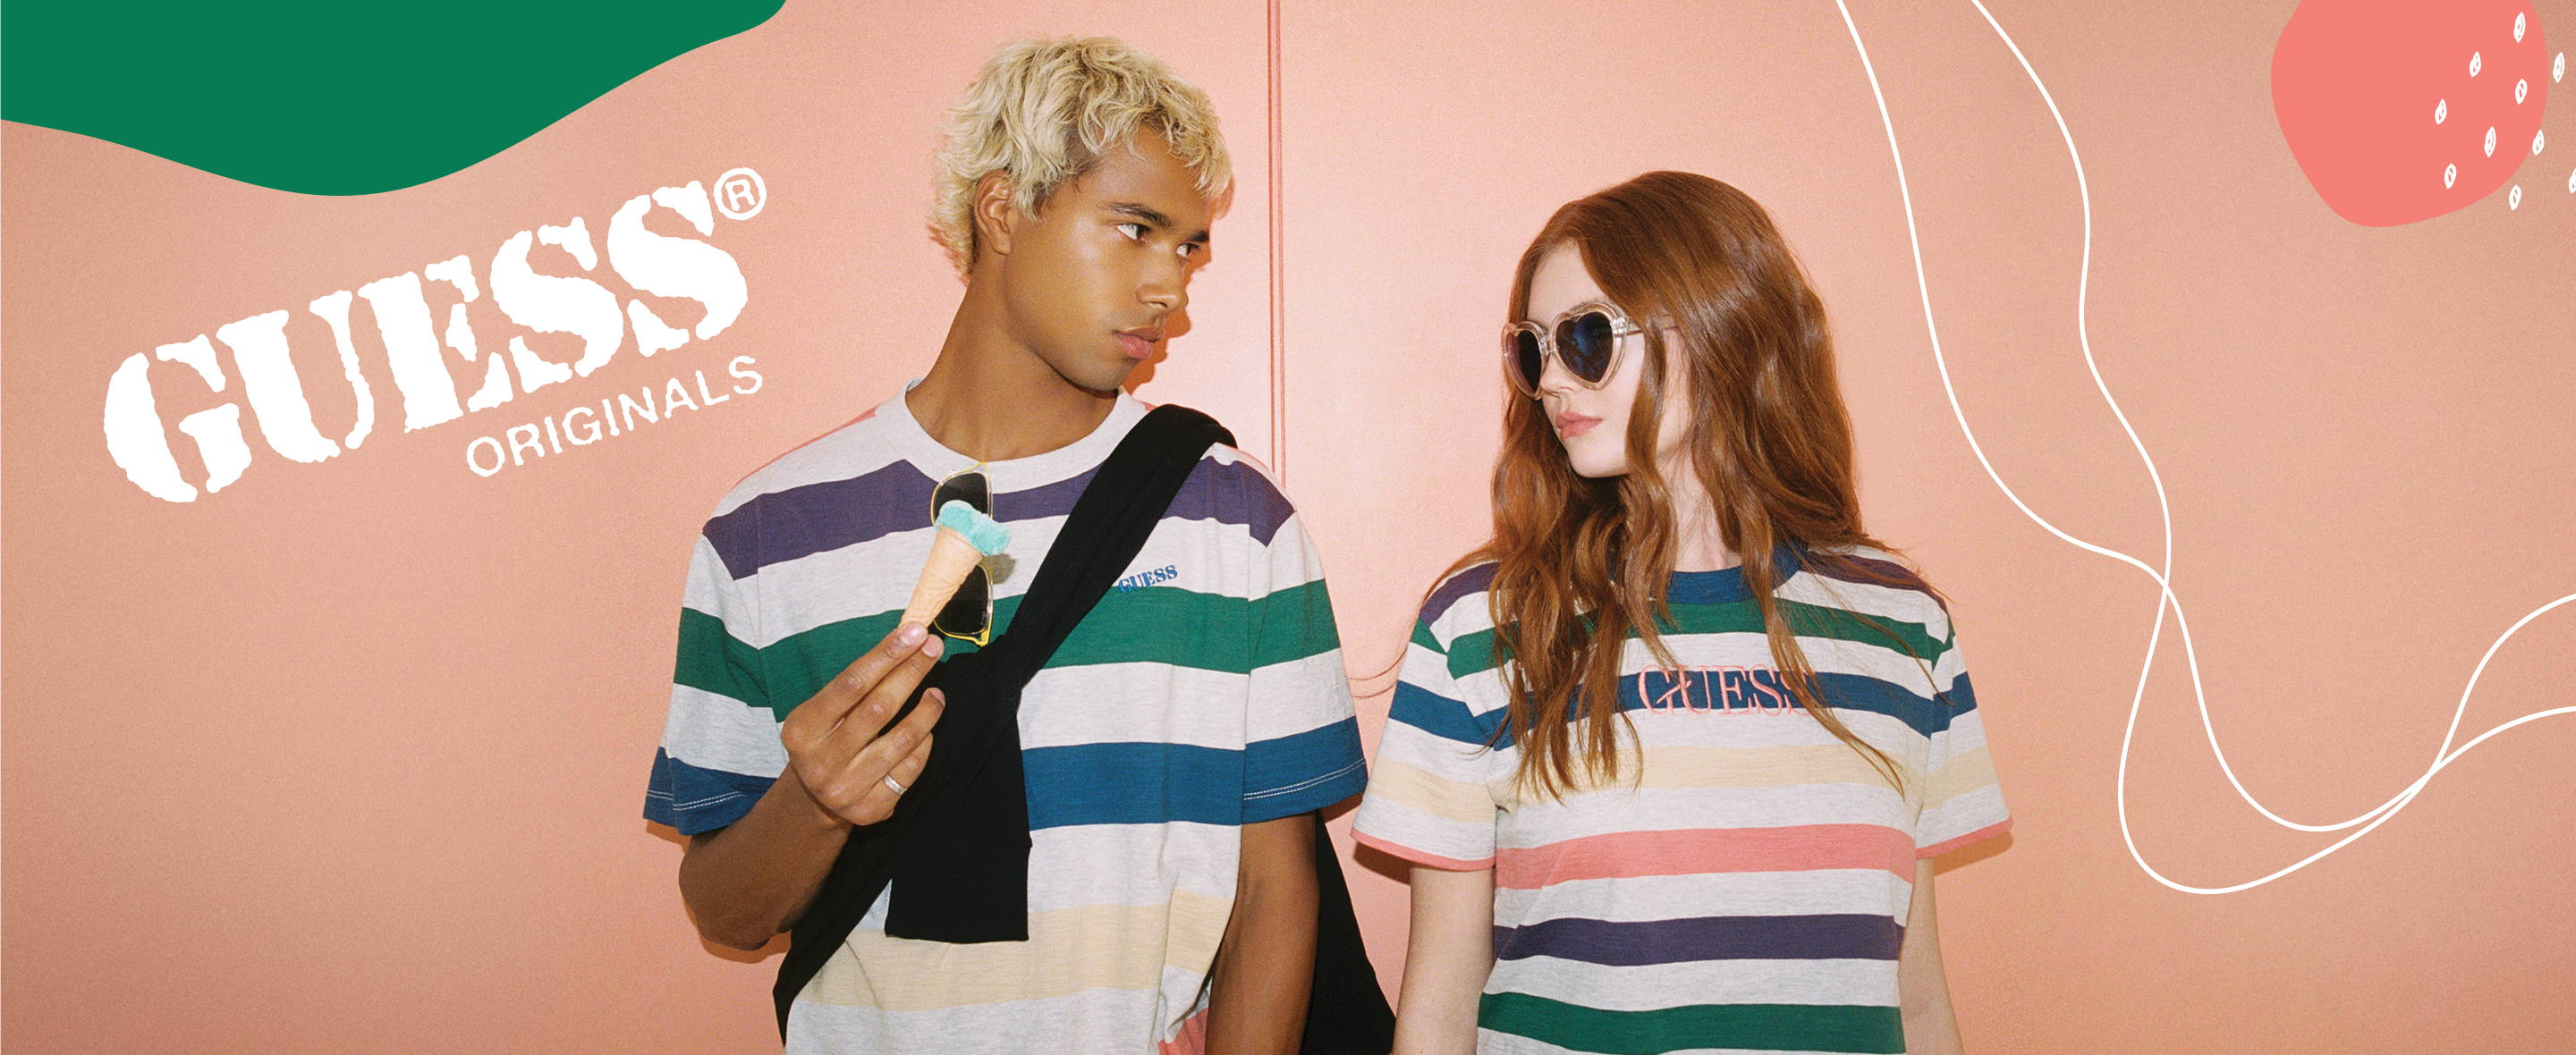 A couple wearing GUESS Originals collection clothing